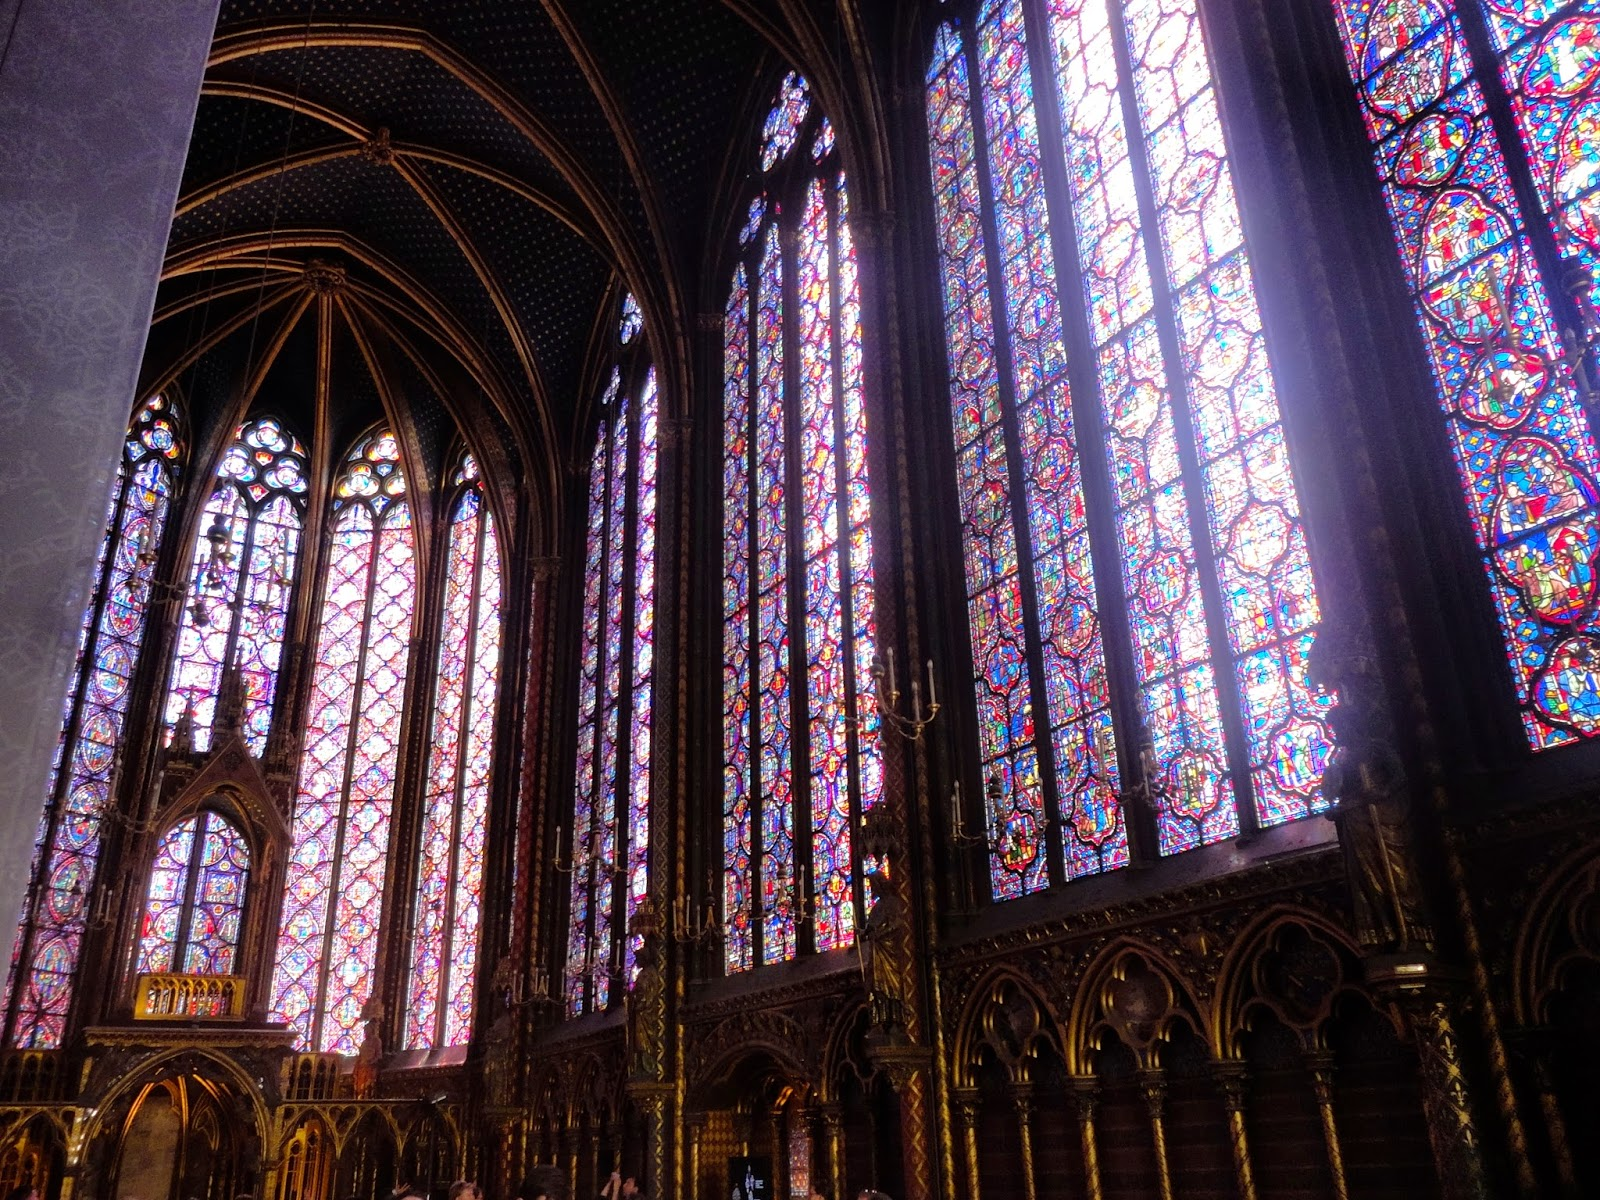 Interior of Sainte-Chapelle, Paris